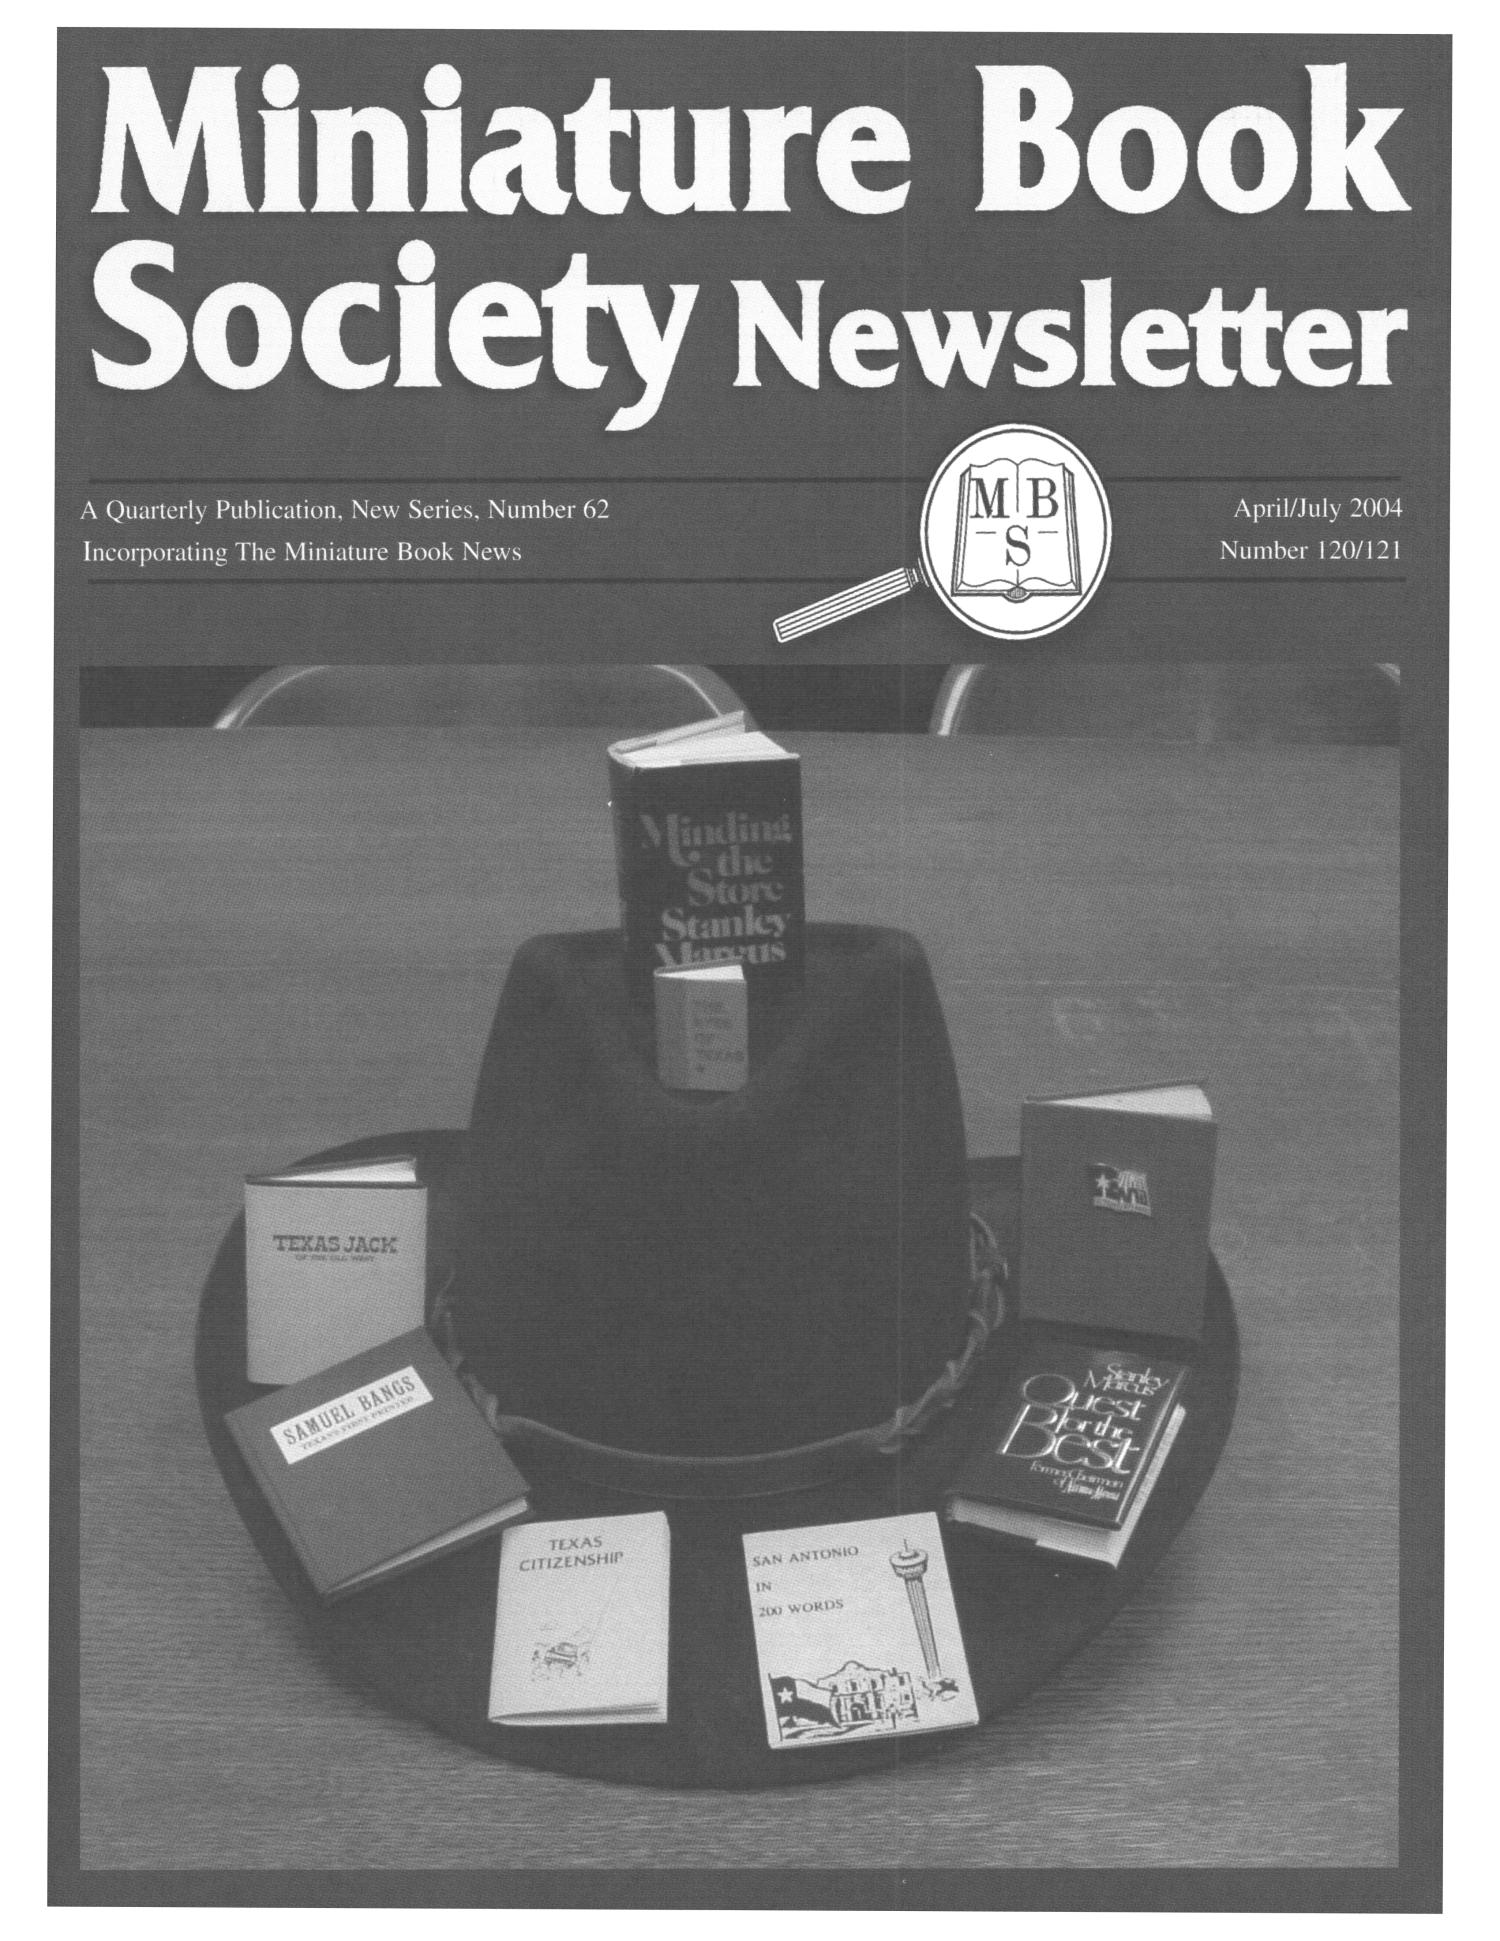 Miniature Book Society Newsletter 2004 April/July                                                                                                      Front Cover